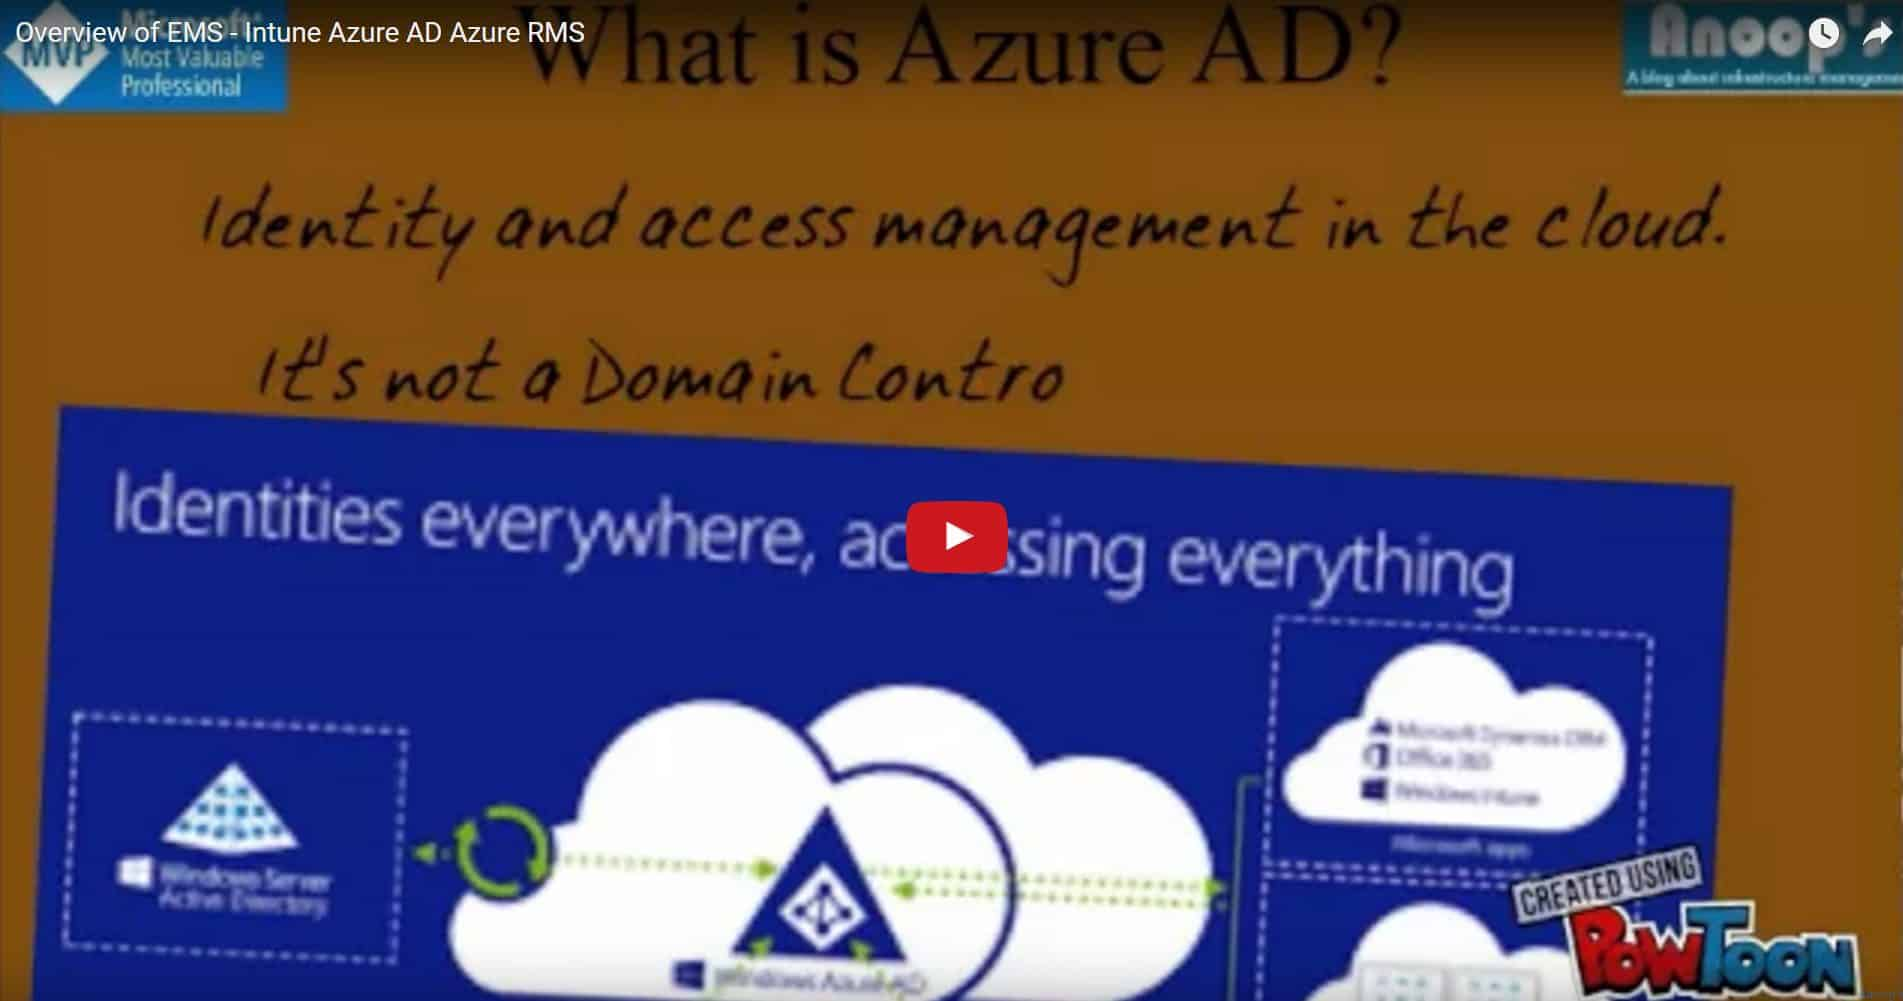 Roadshow Presentation Overview of EMS Intune Azure AD Azure RMS 1